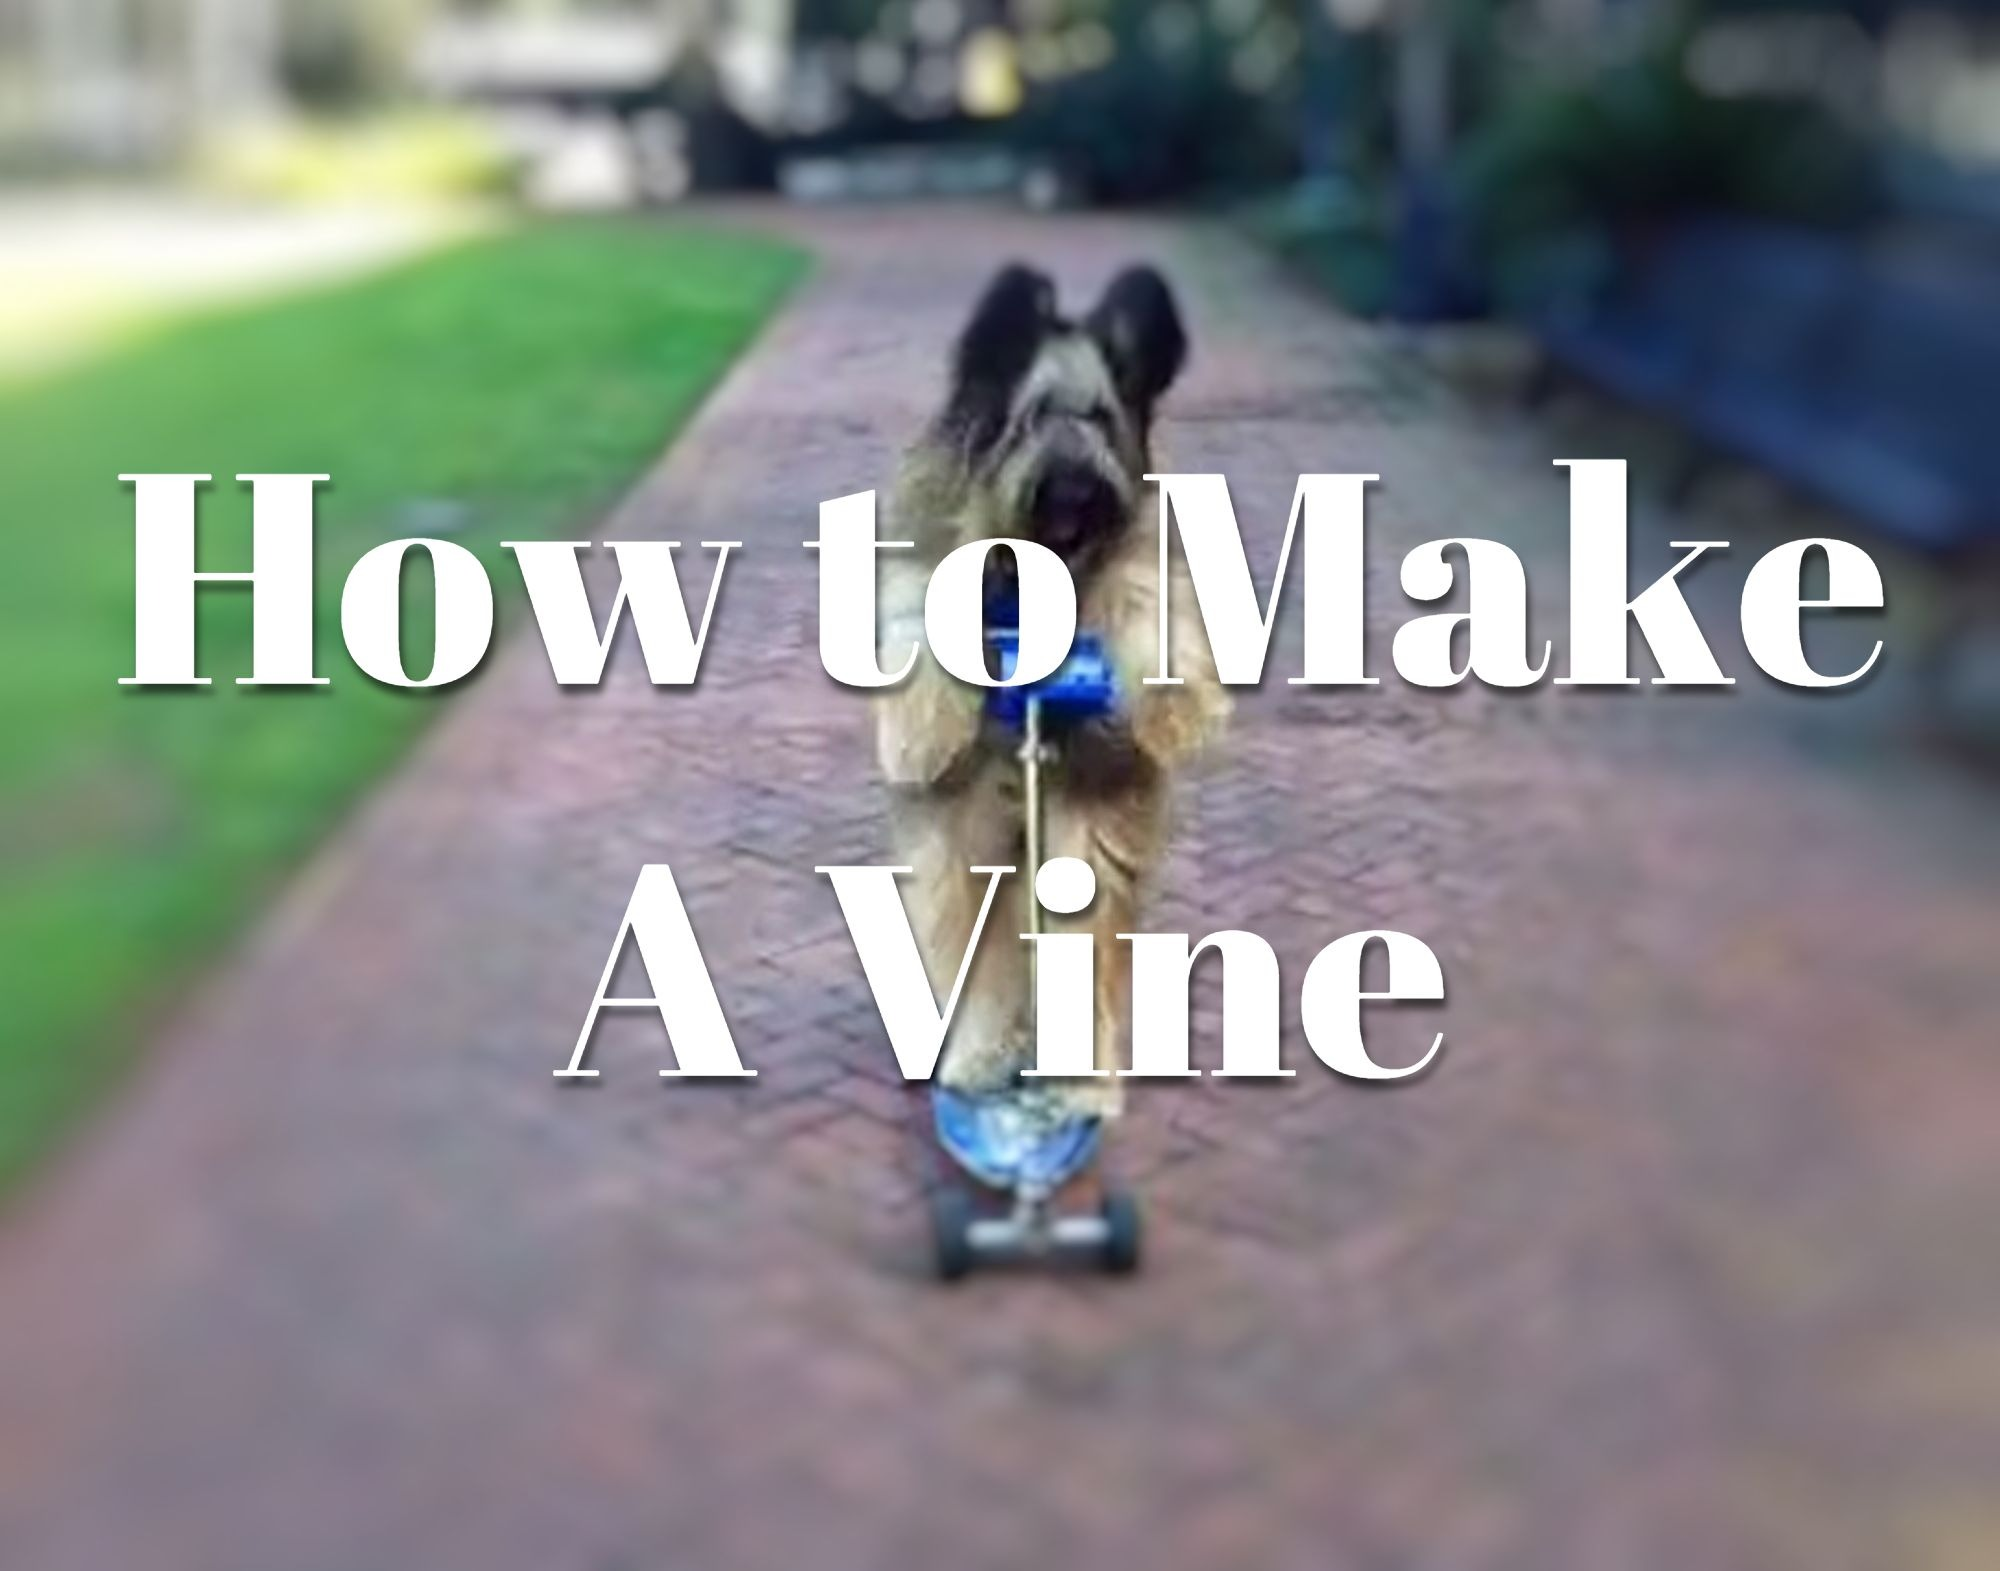 how to make a vine